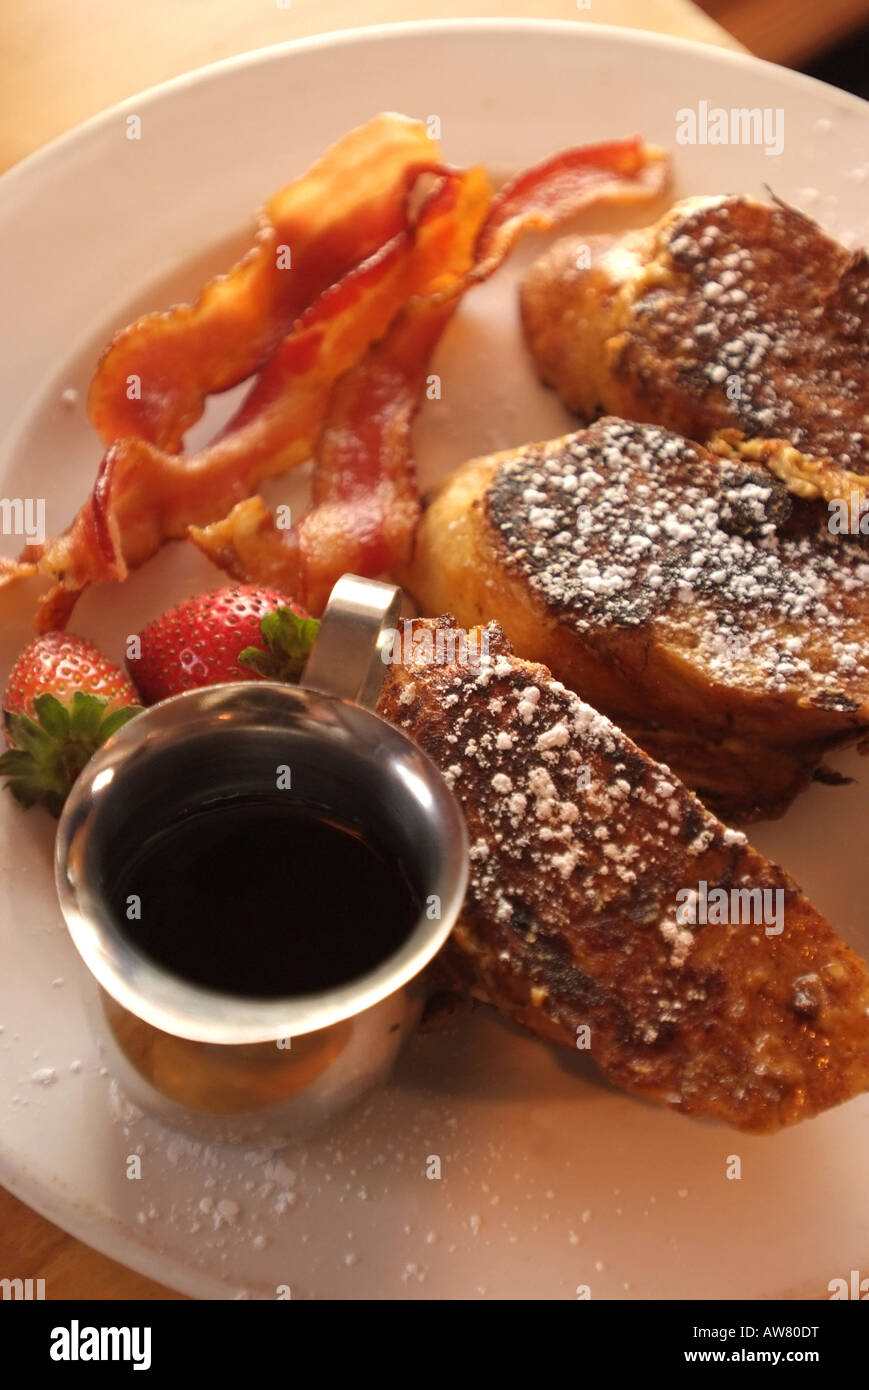 USA Sperryville Thronton River Grille French Toast served at Sunday Brunch Stock Photo